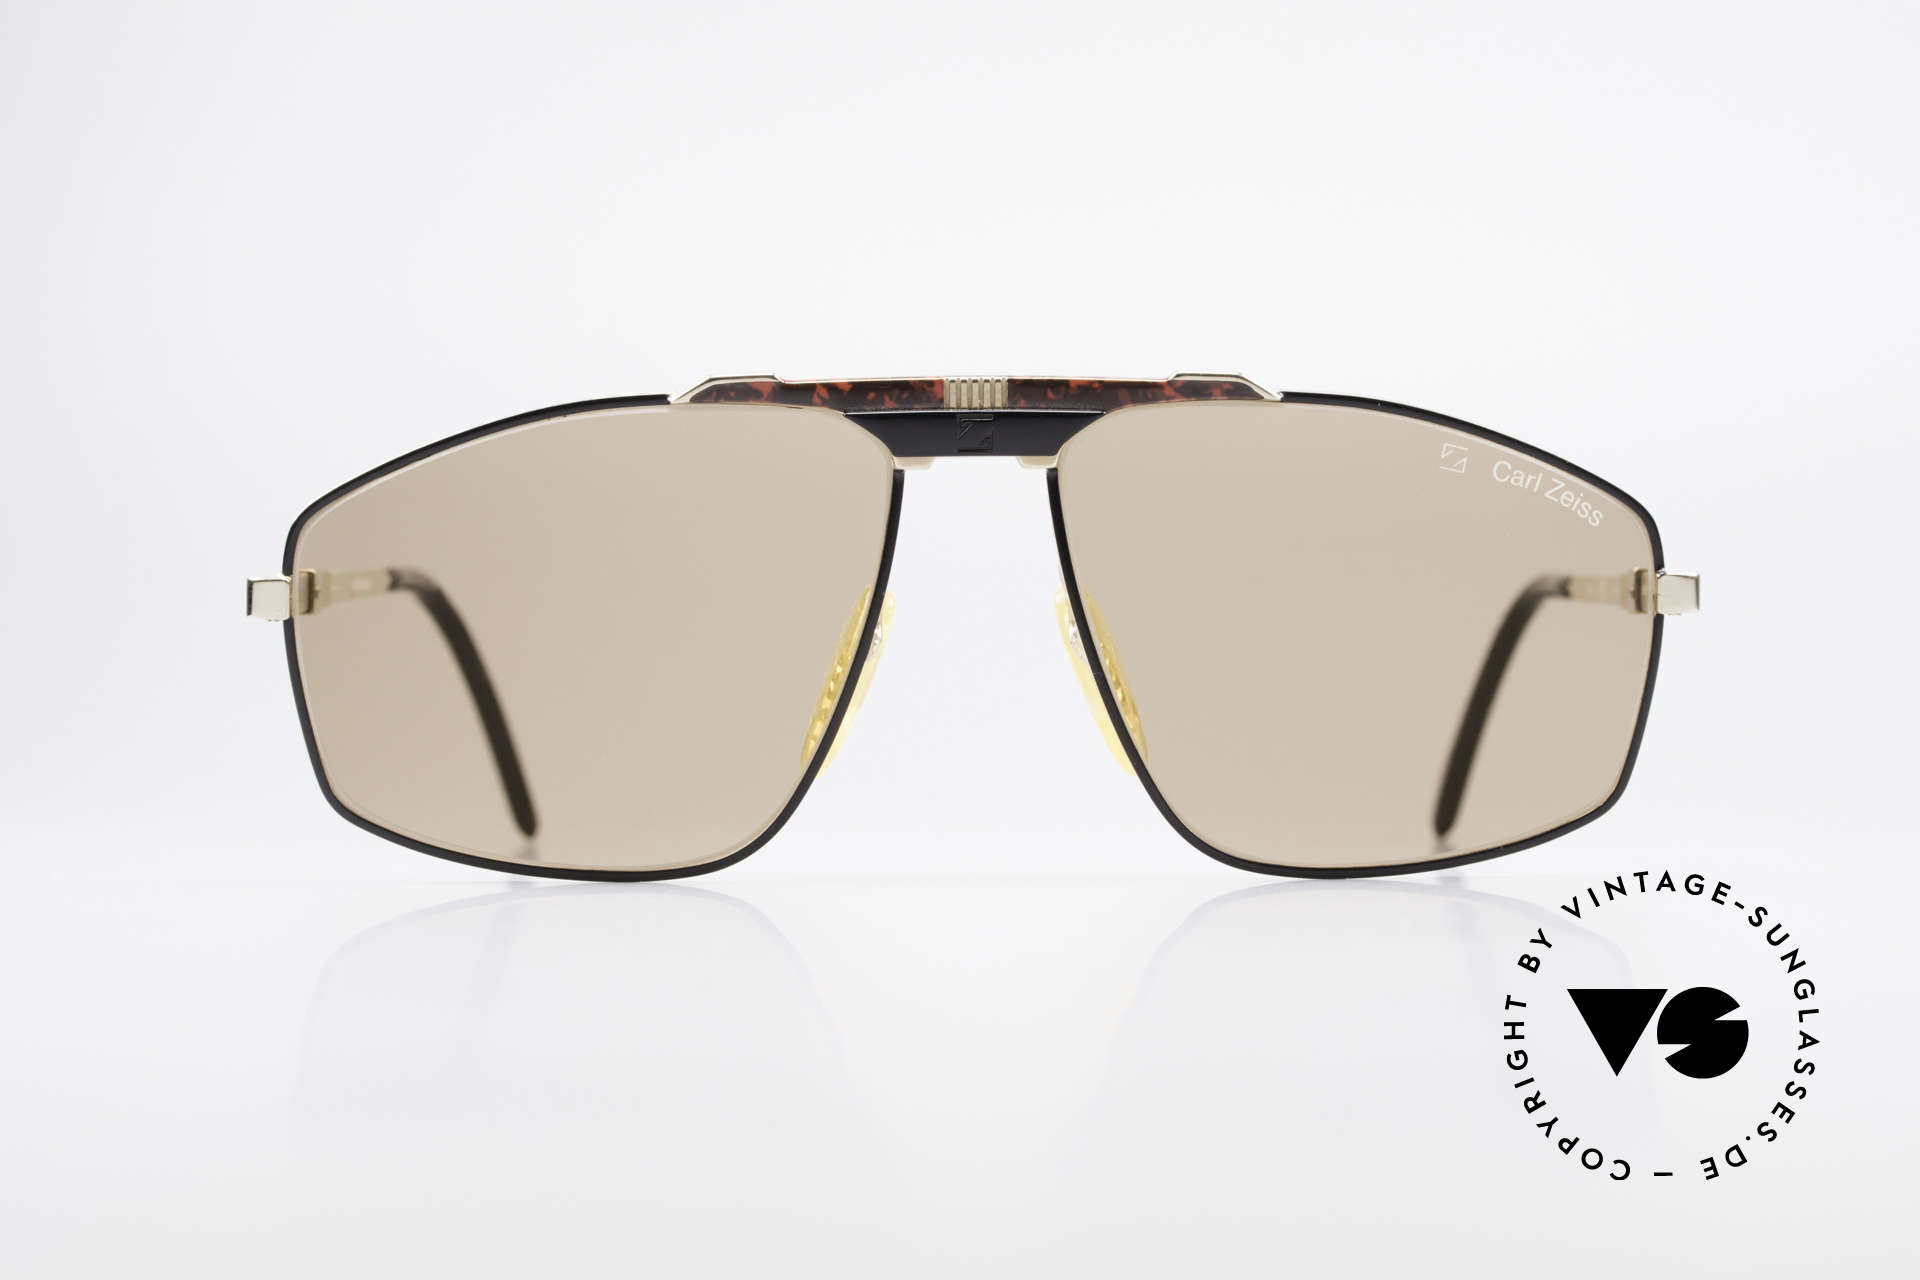 Zeiss 9925 Gentlemen's 80's Sunglasses, this rare vintage model combines all quality features, Made for Men